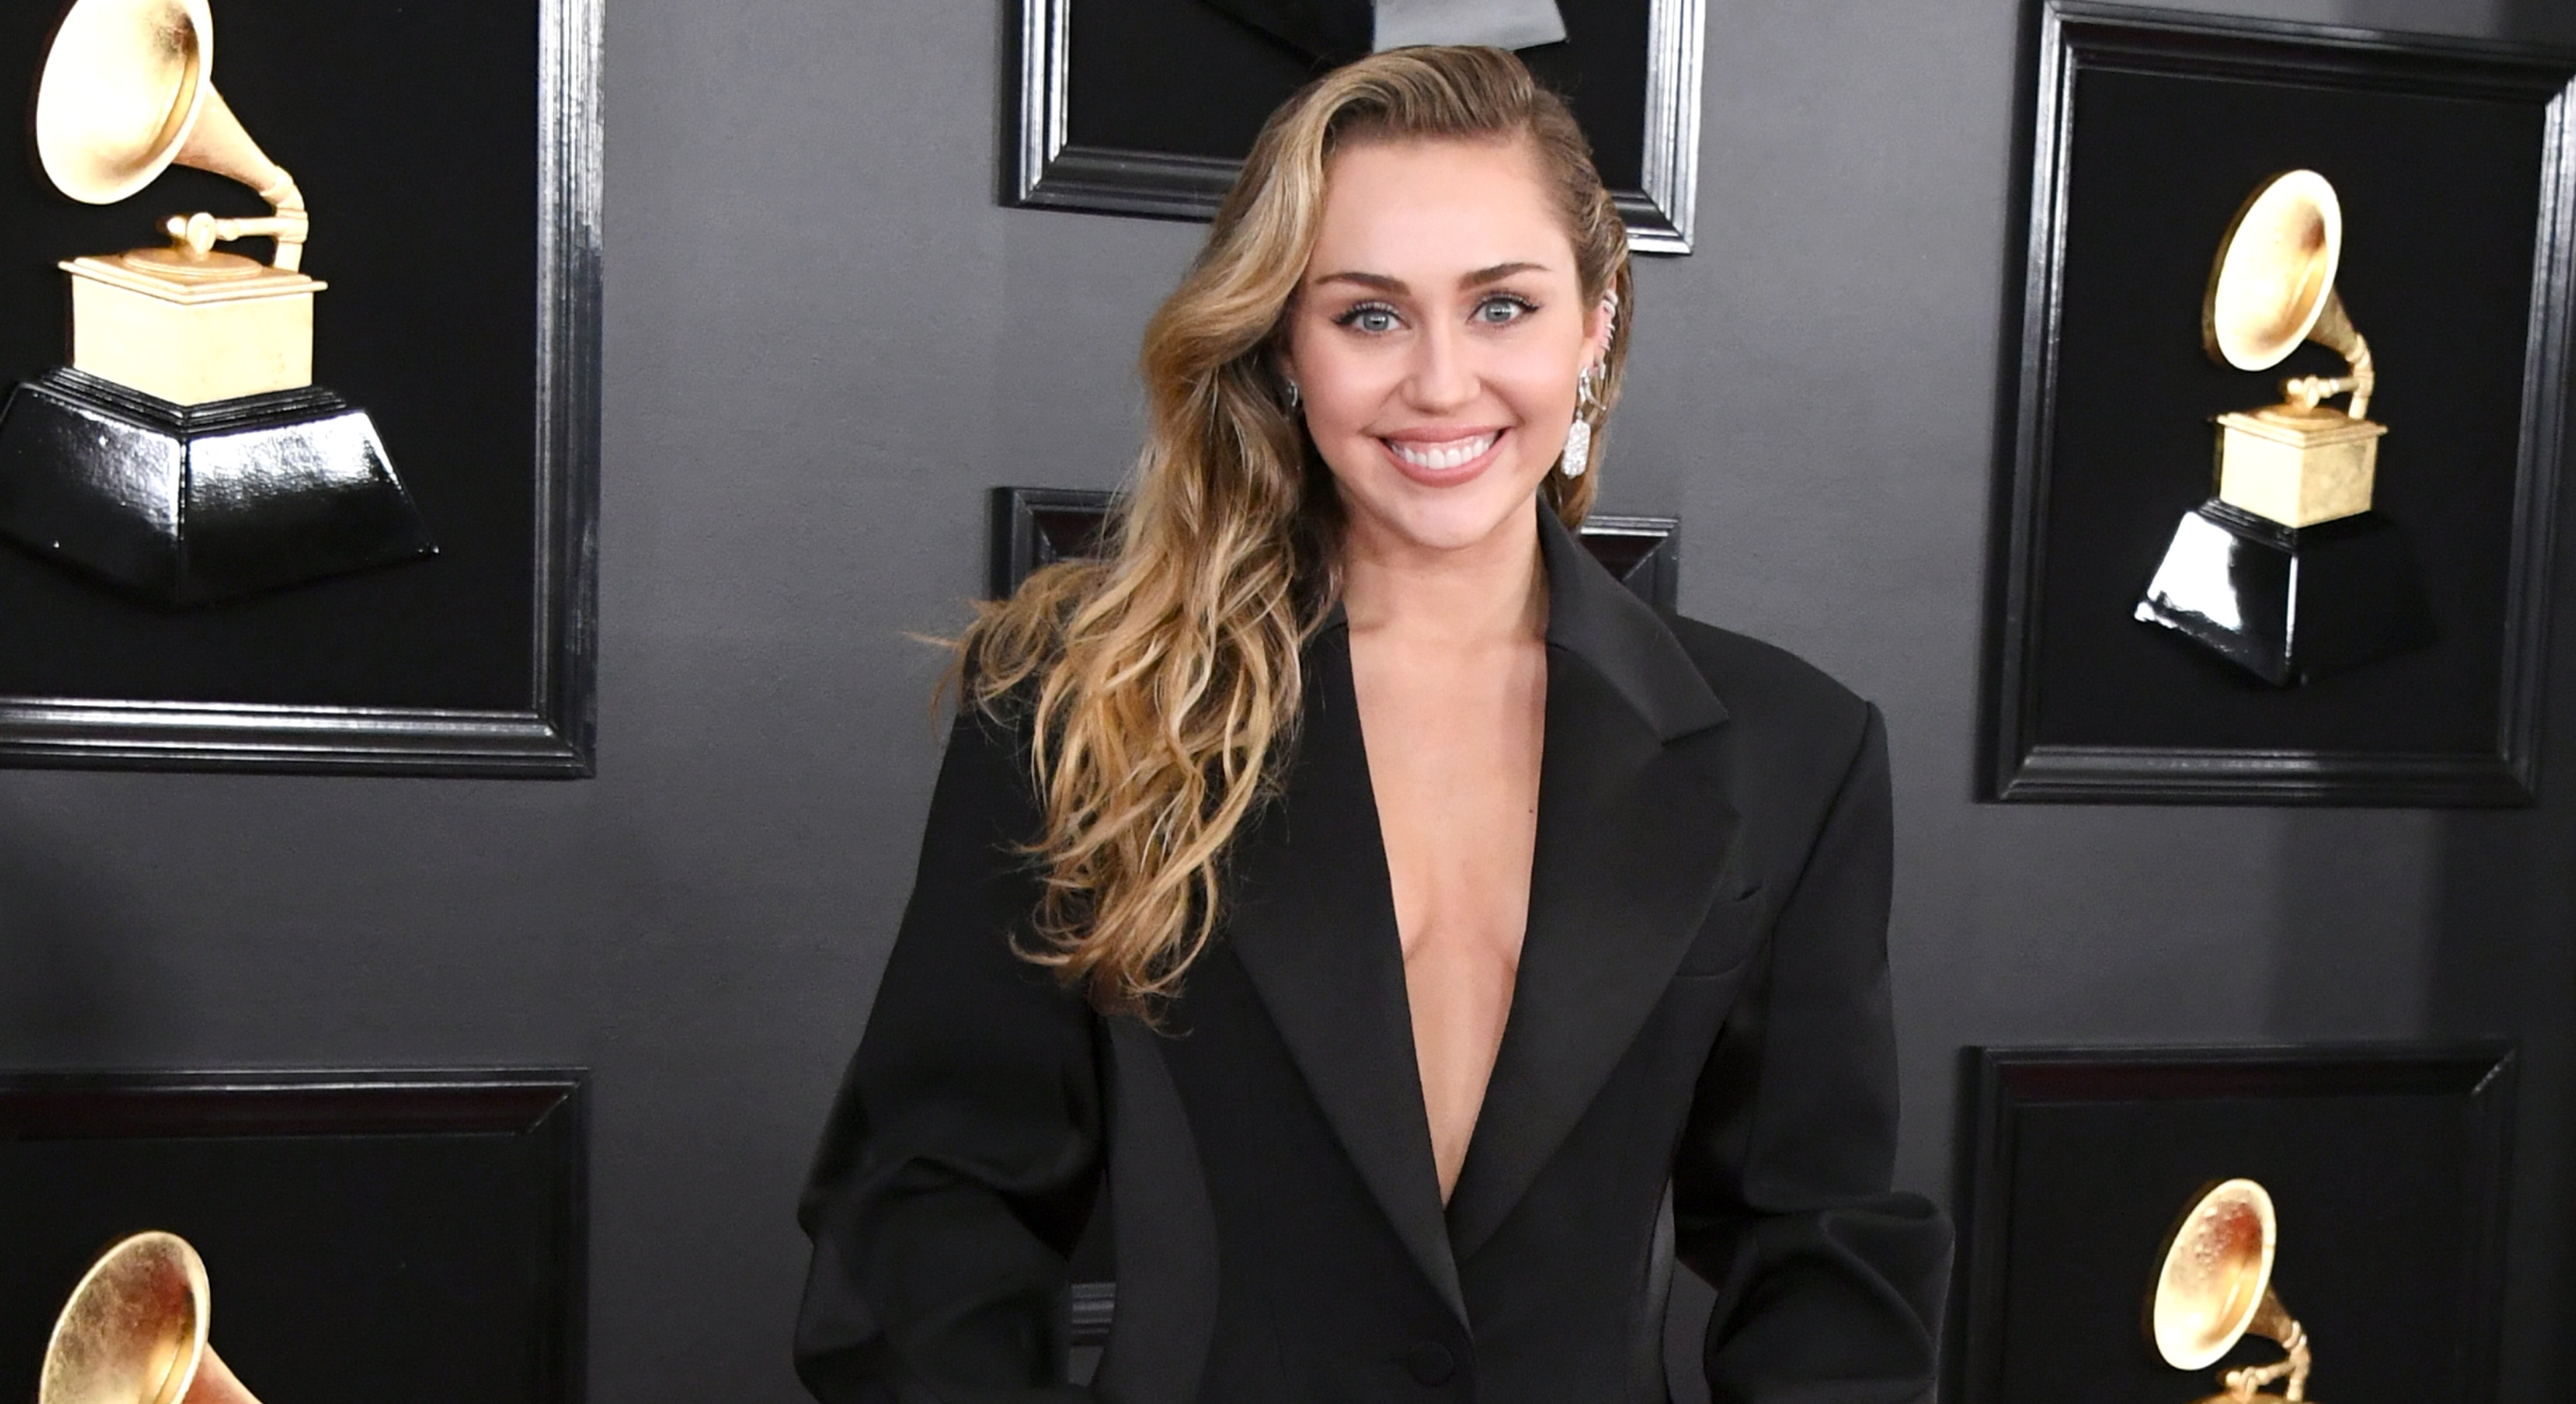 Miley Cyrus at the 2019 Grammy Awards (Getty)